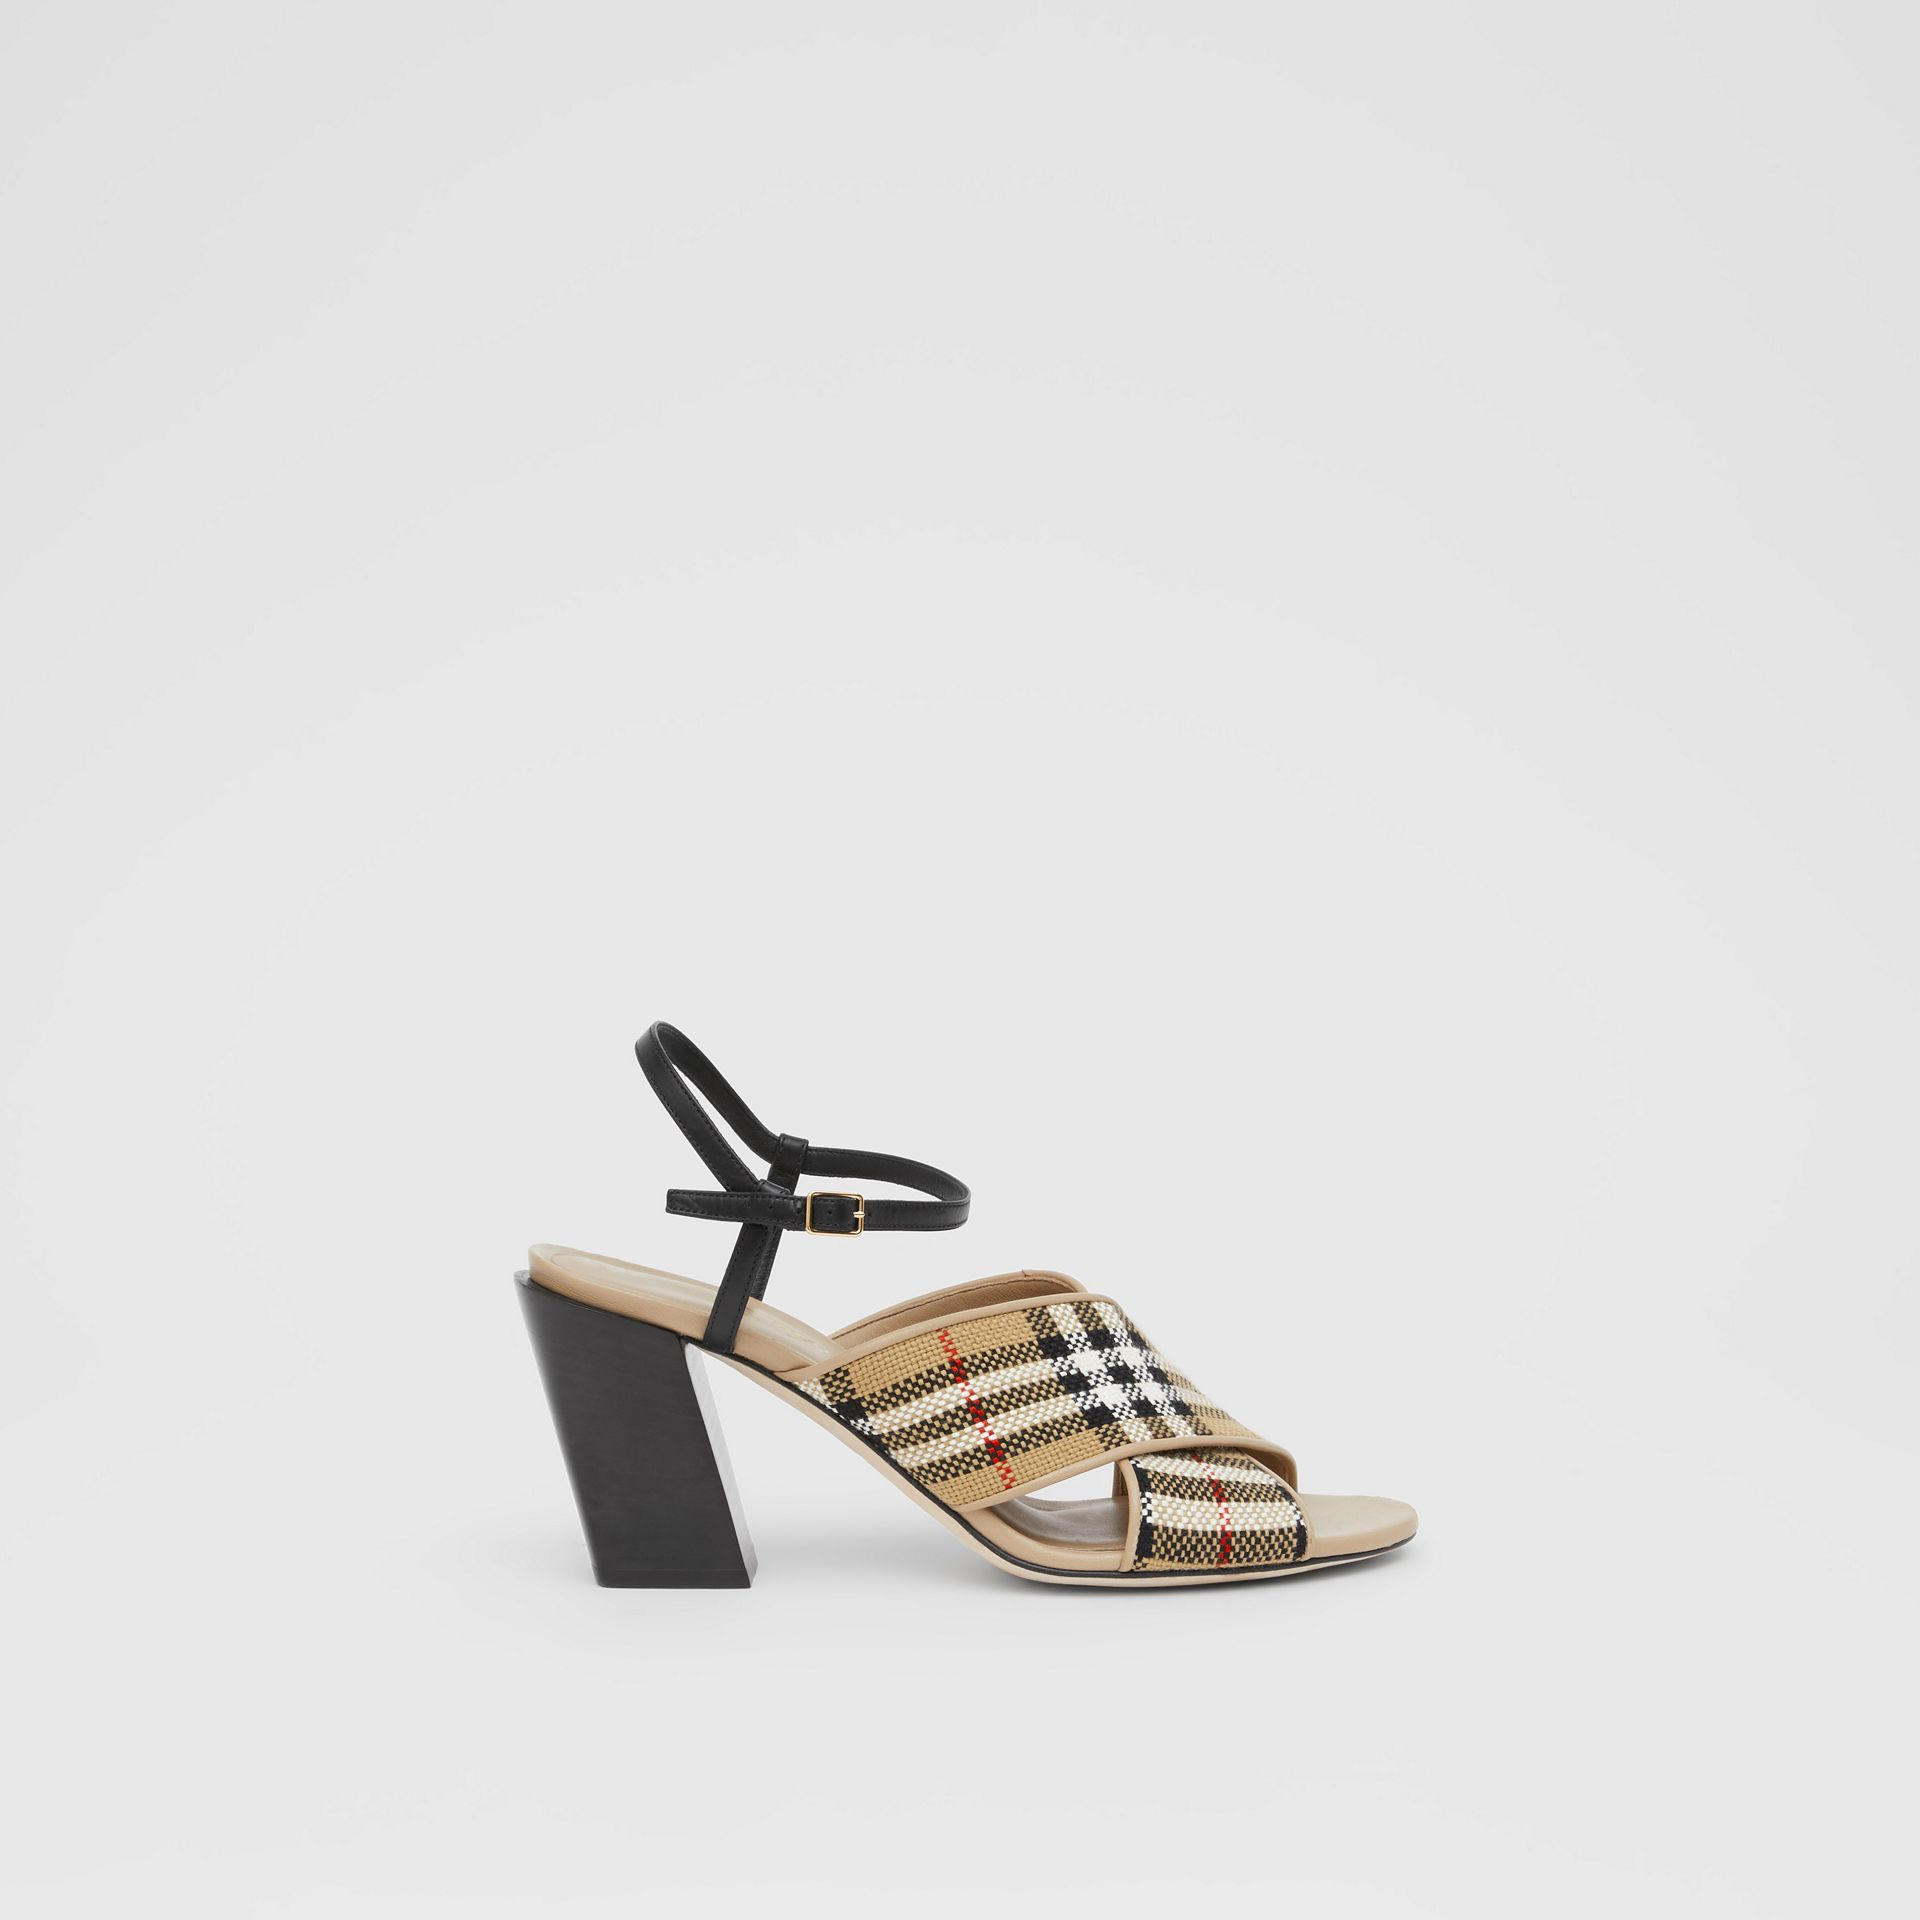 Latticed Cotton and Leather Block-heel Sandals in Archive Beige/black - Women | Burberry United Kingdom - gallery image 5